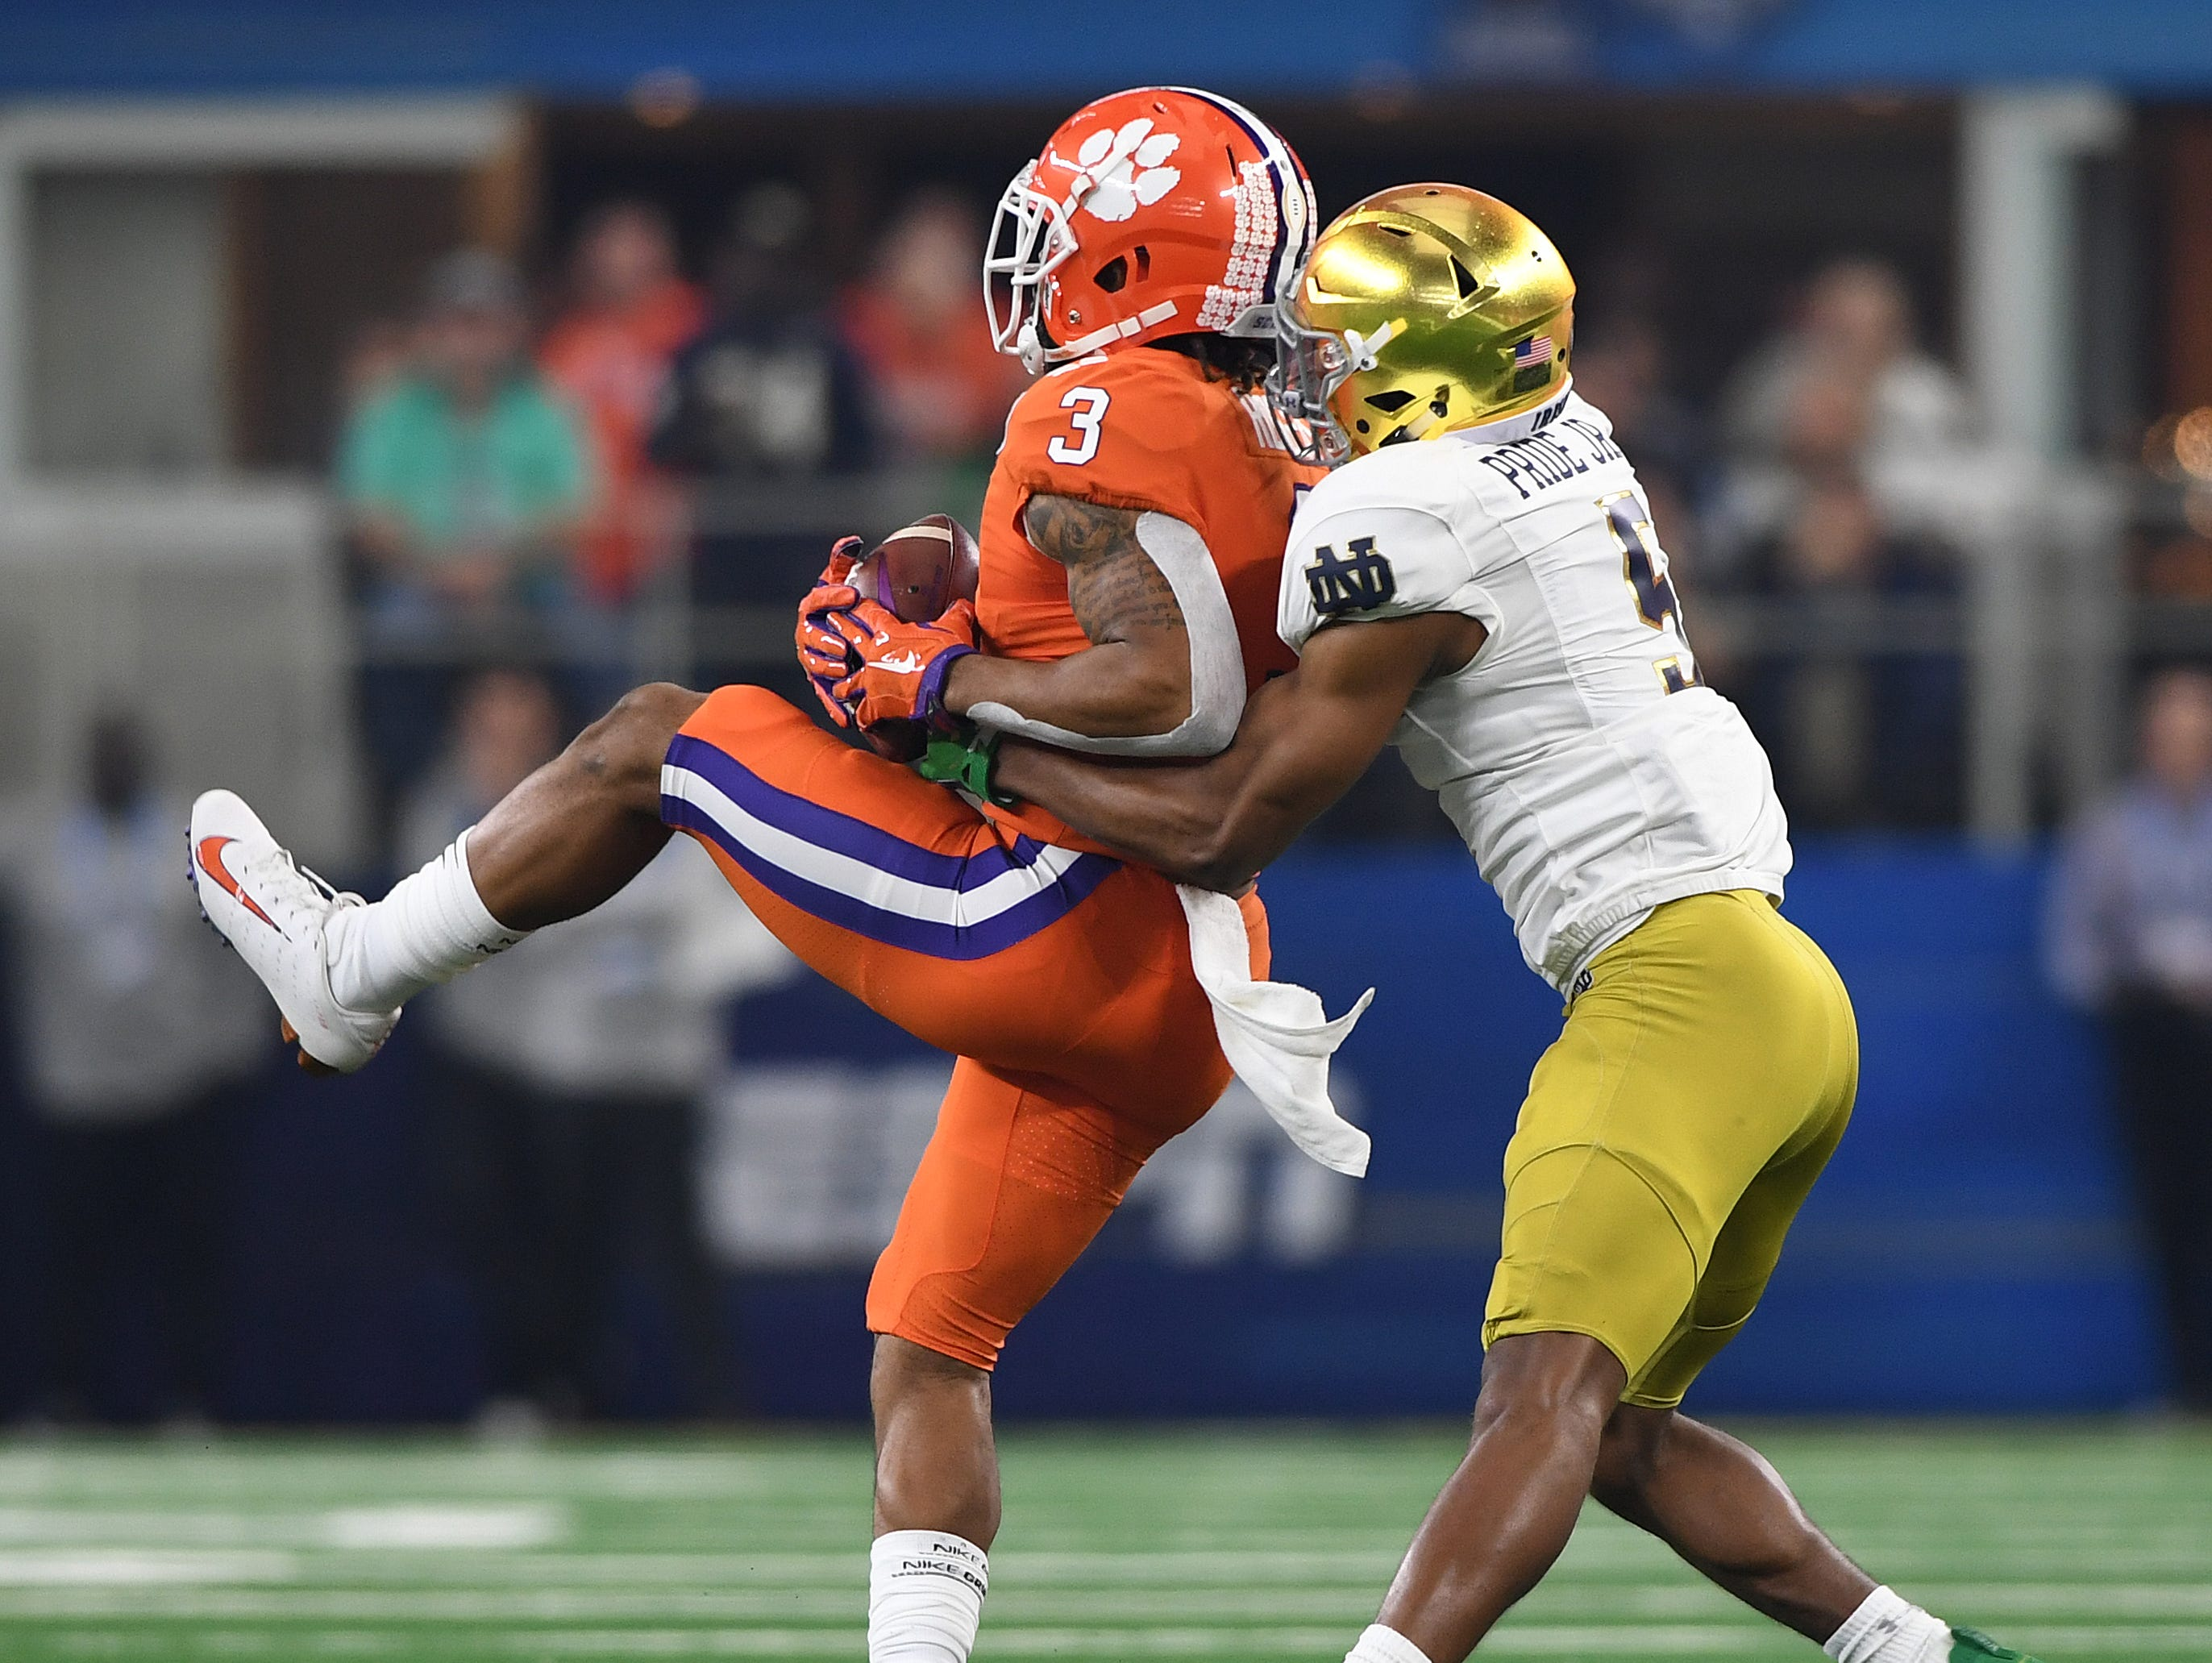 Clemson wide receiver Amari Rodgers (3) catches a pass past Notre Dame cornerback Troy Pride Jr. (5) during the 1st quarter of the Goodyear Cotton Bowl at AT&T stadium in Arlington, TX Saturday, December 29, 2018.